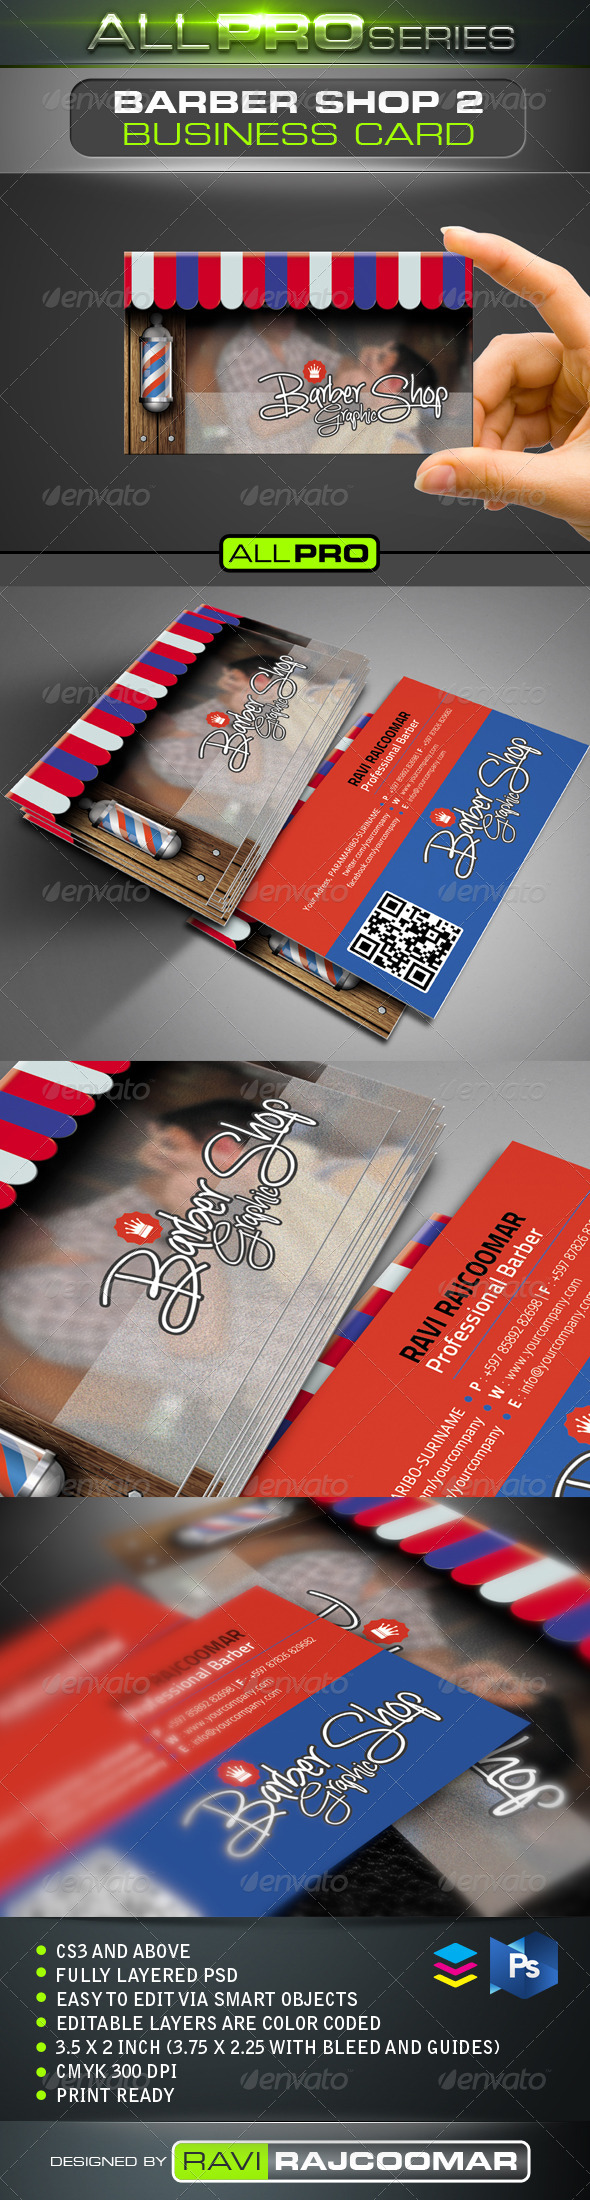 GraphicRiver The Barbershop Business Card Vol.2 4765034